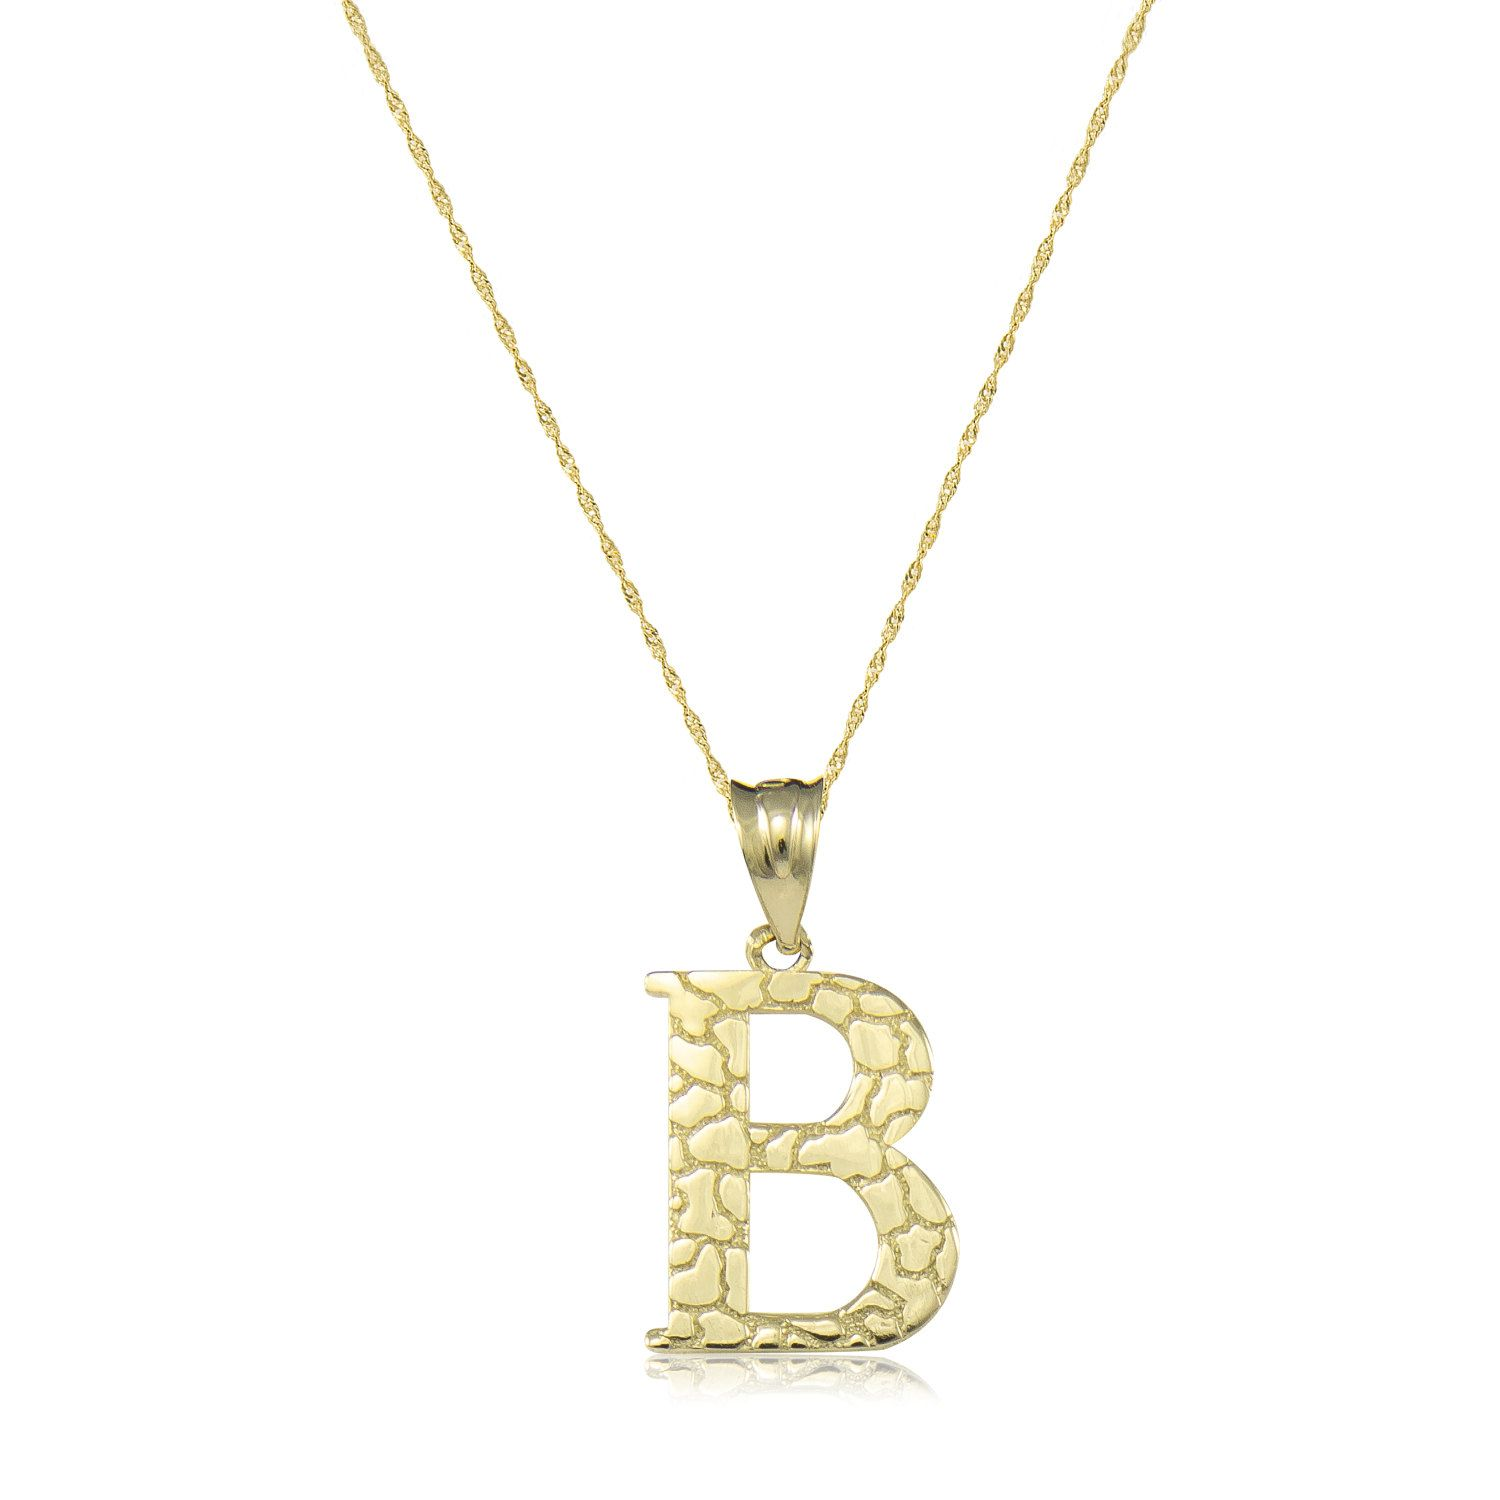 10k Solid Yellow Gold Nugget Initial Letter Necklace Pendant Singapore Chain Description Material Yellow Gold Pendants Gold Nugget Custom Initial Jewelry